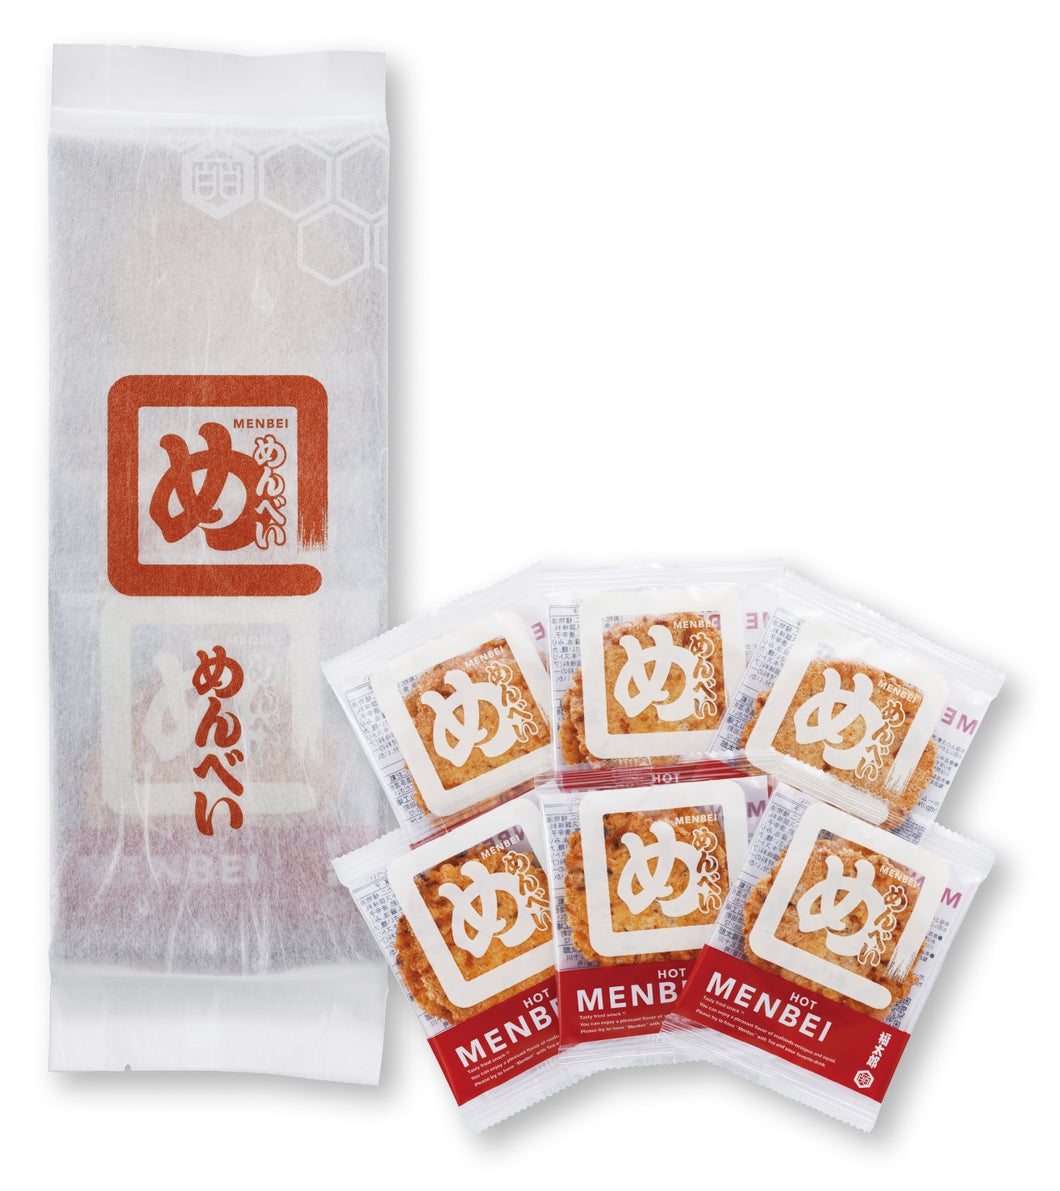 Menbei potato crackers 1 package